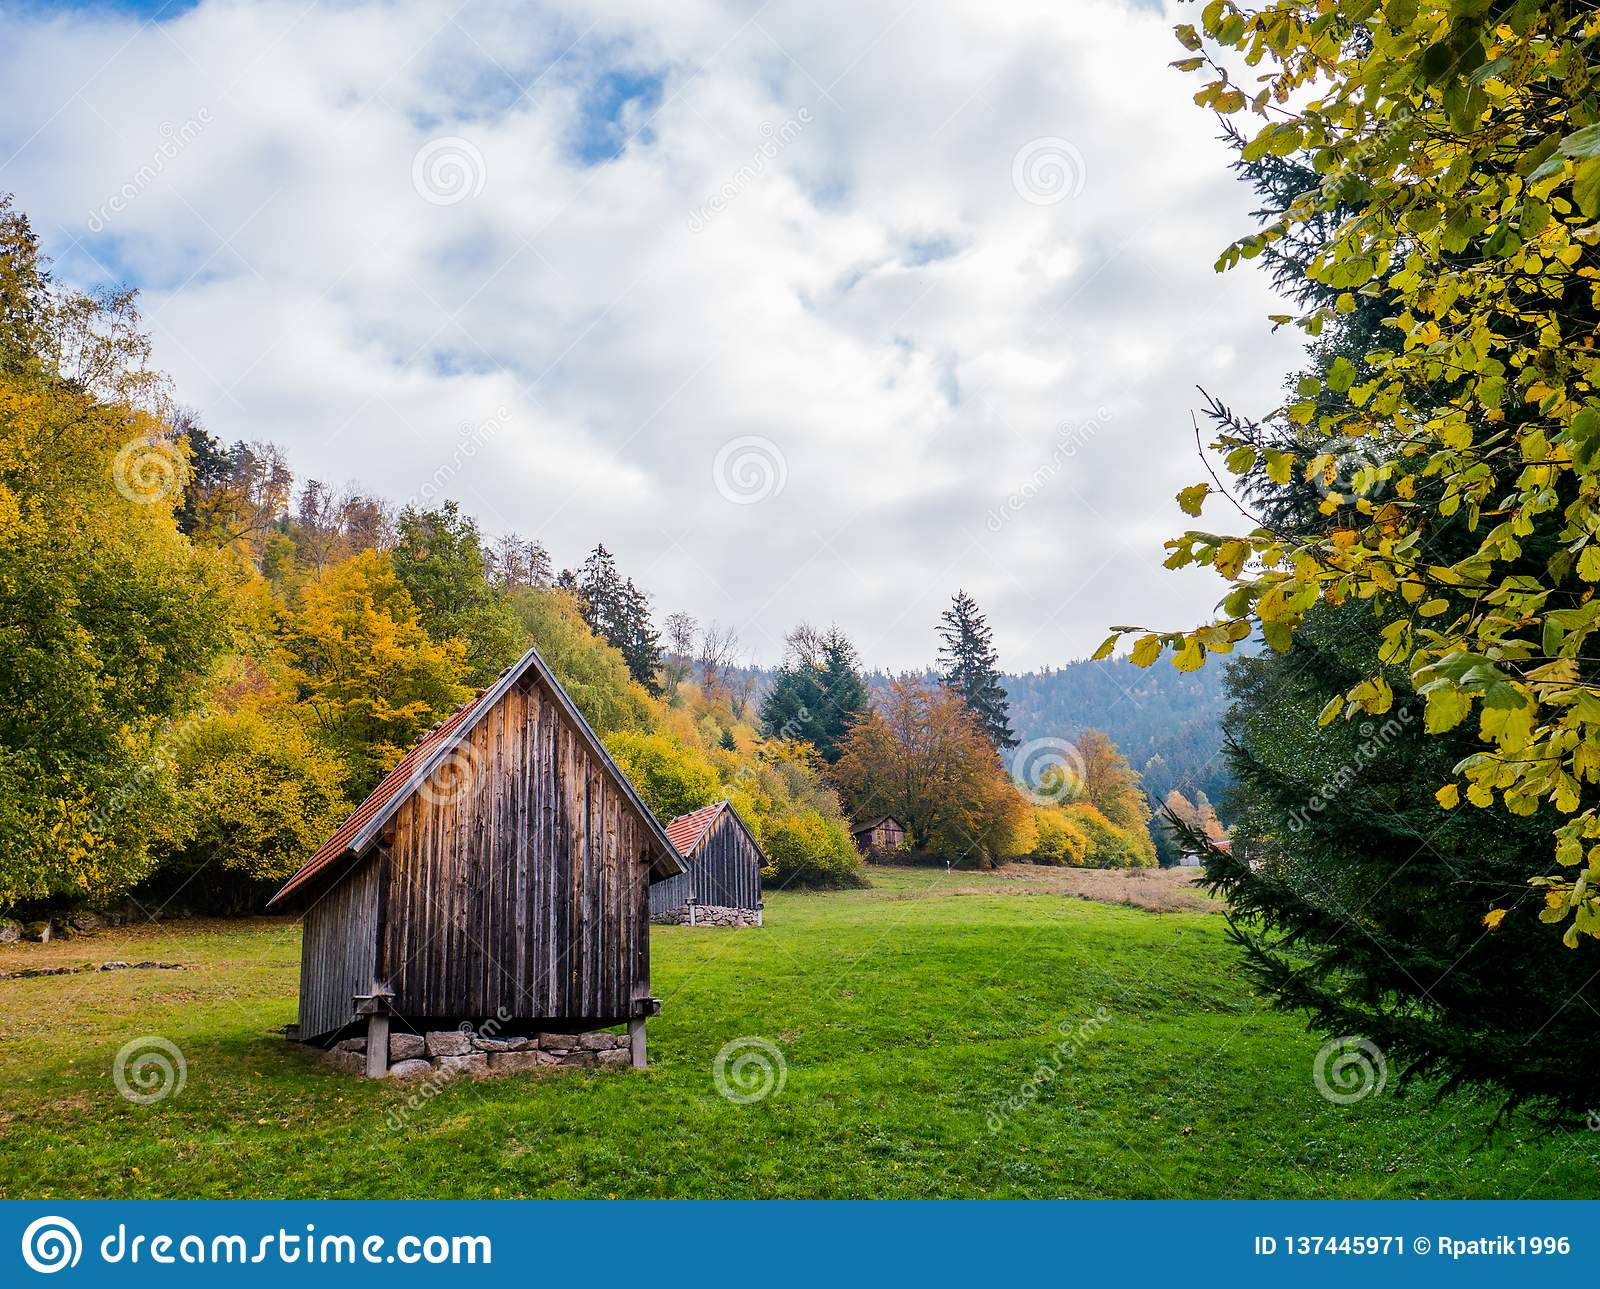 Black Forest landscape with sheds in autumn